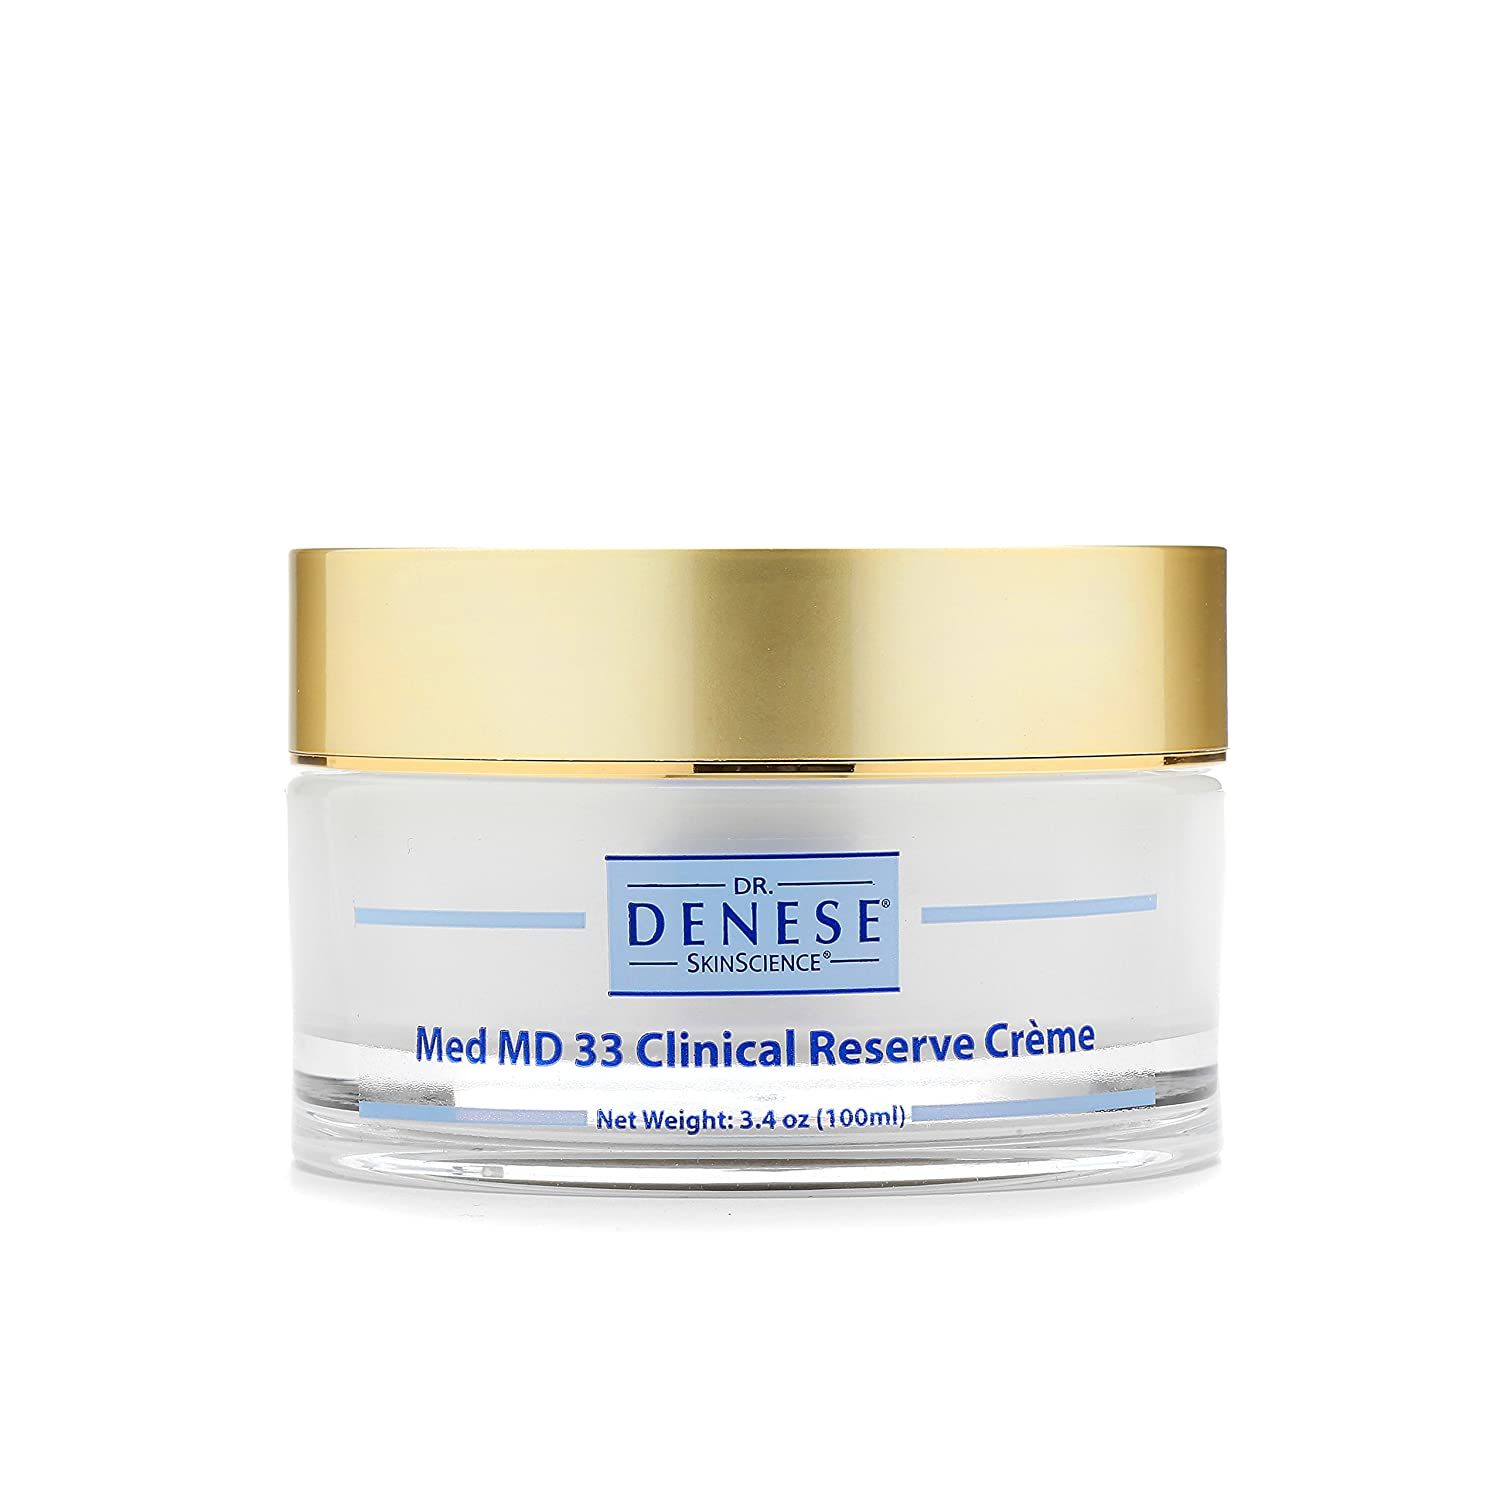 Dr. Denese SkinScience Med MD Cream Clinical 33 Vibrant 1 year warranty Max 64% OFF Reserve